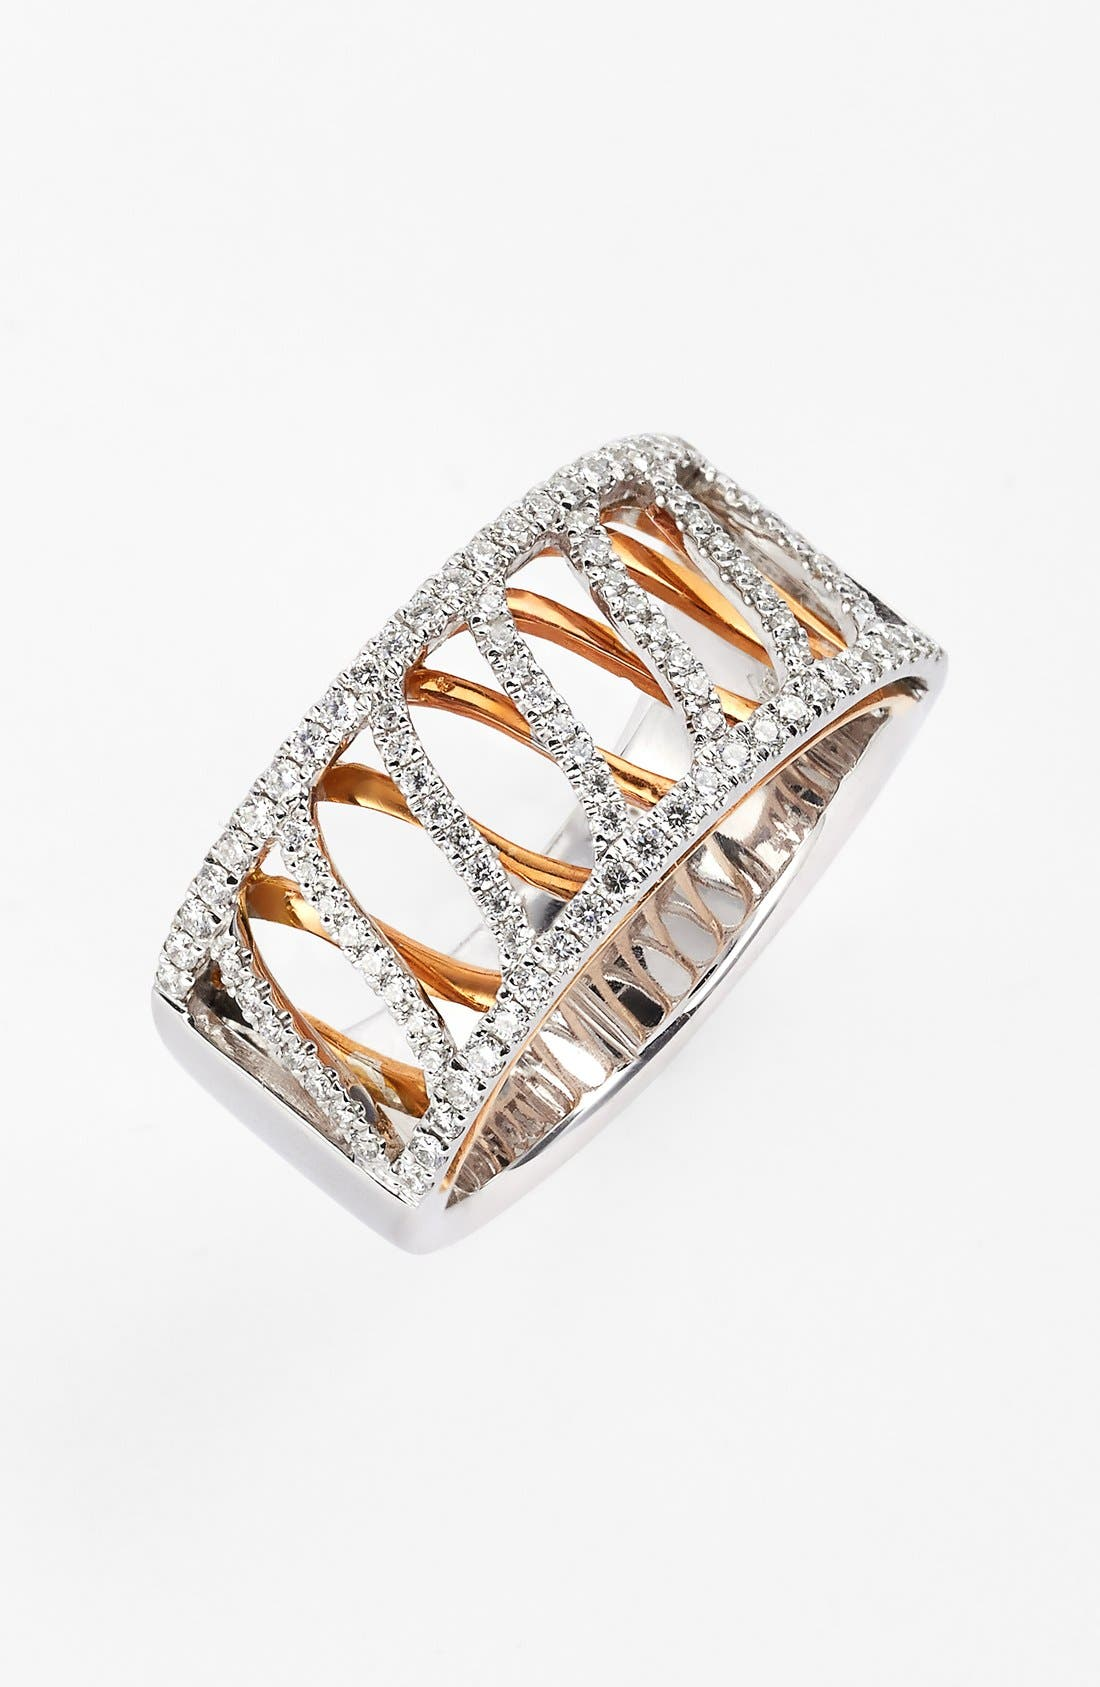 Alternate Image 1 Selected - Bony Levy Wide Two-Tone Diamond Ring (Limited Edition) (Nordstrom Exclusive)